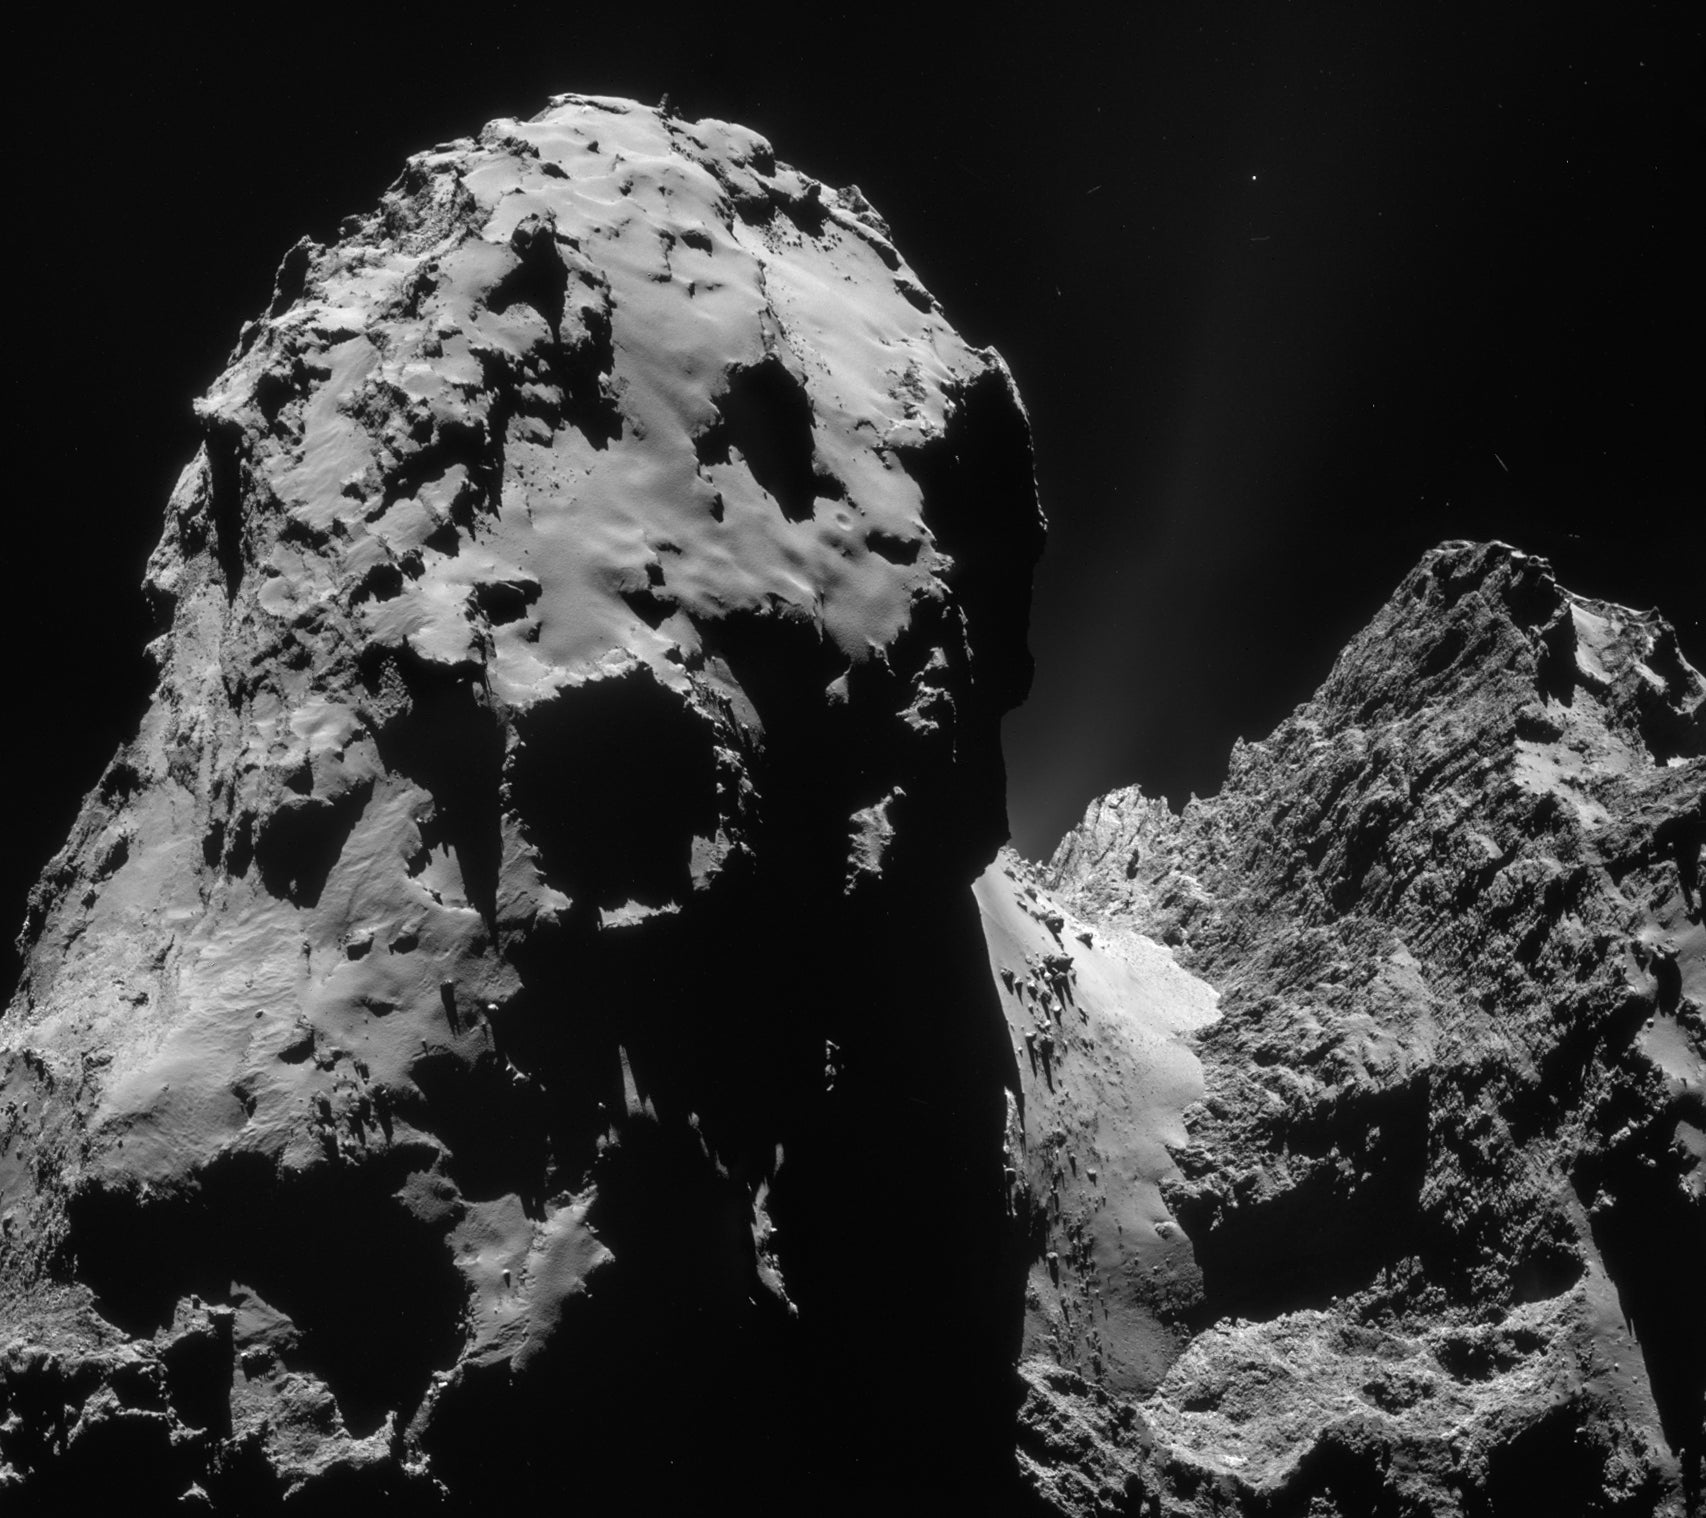 New incredible photo reveals titanic cliffs in Rosetta's comet